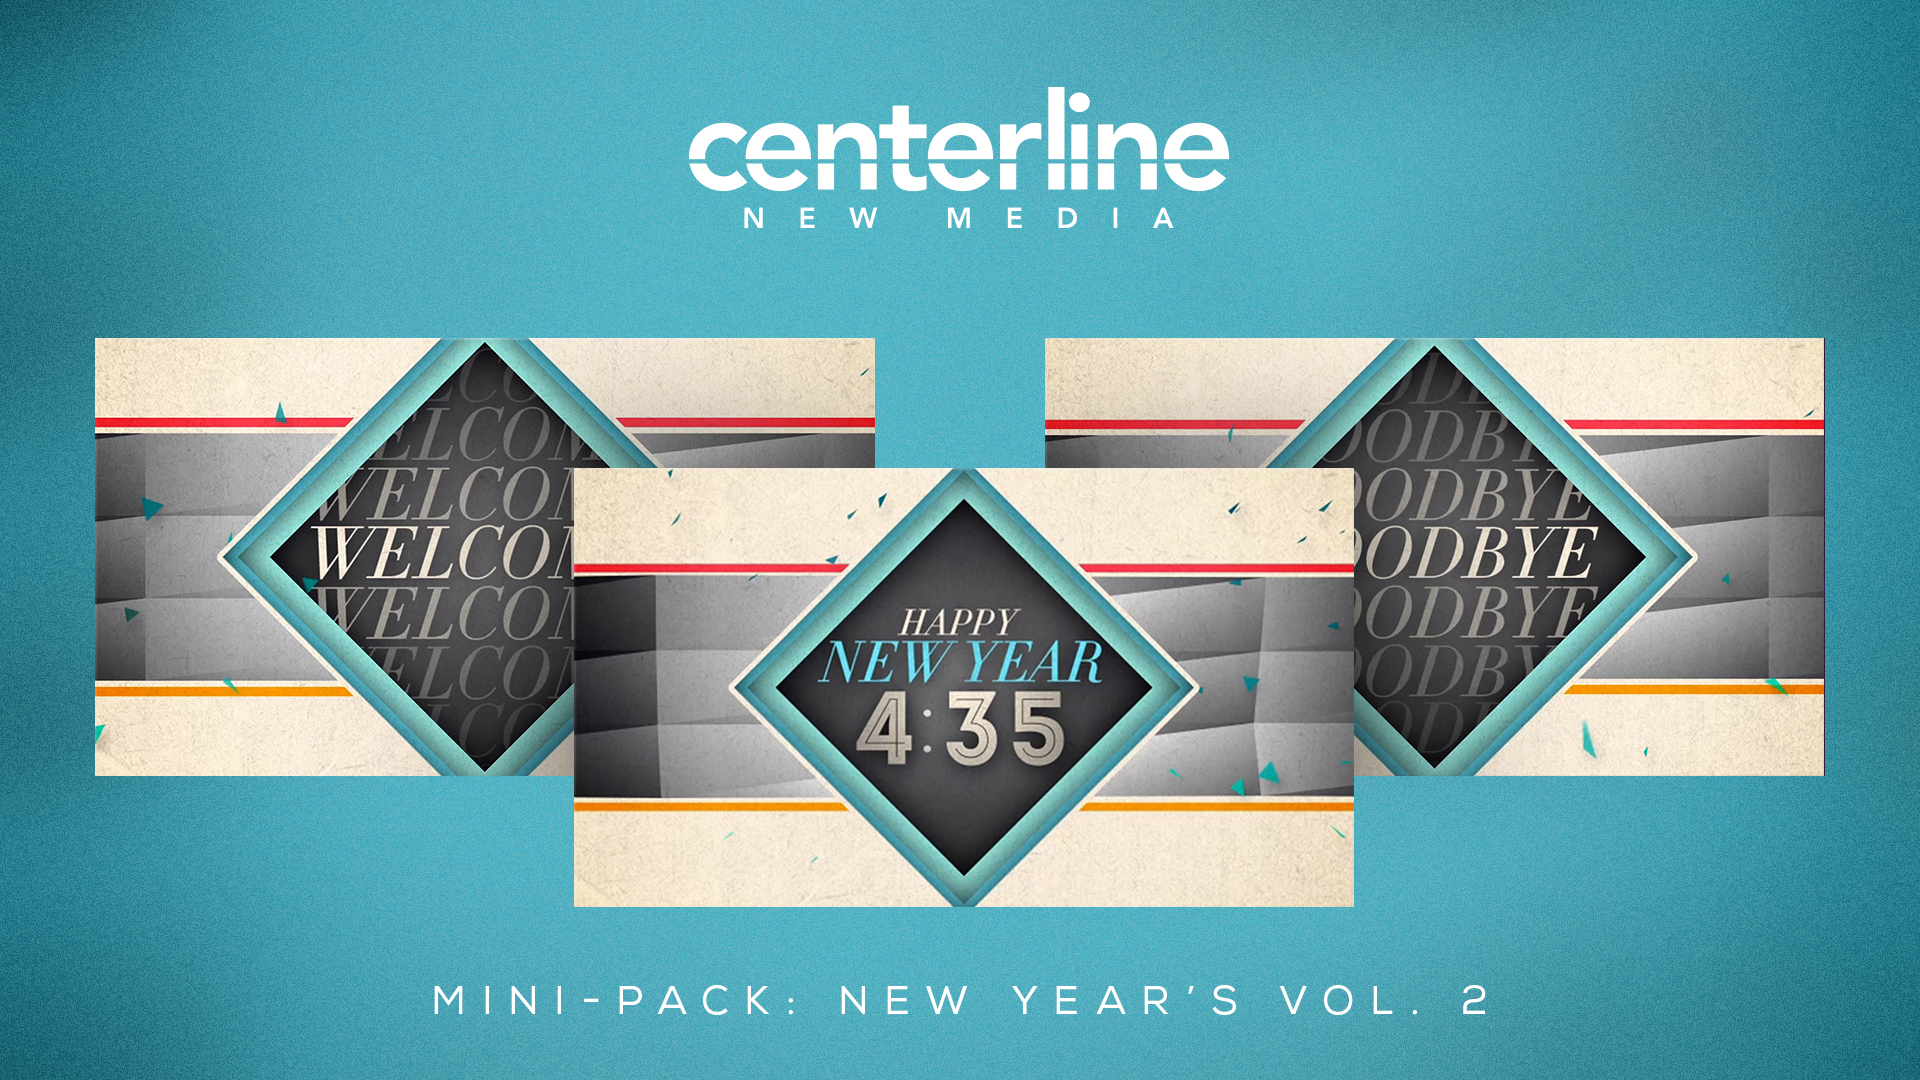 MINI-PACK: NEW YEAR'S VOL. 2